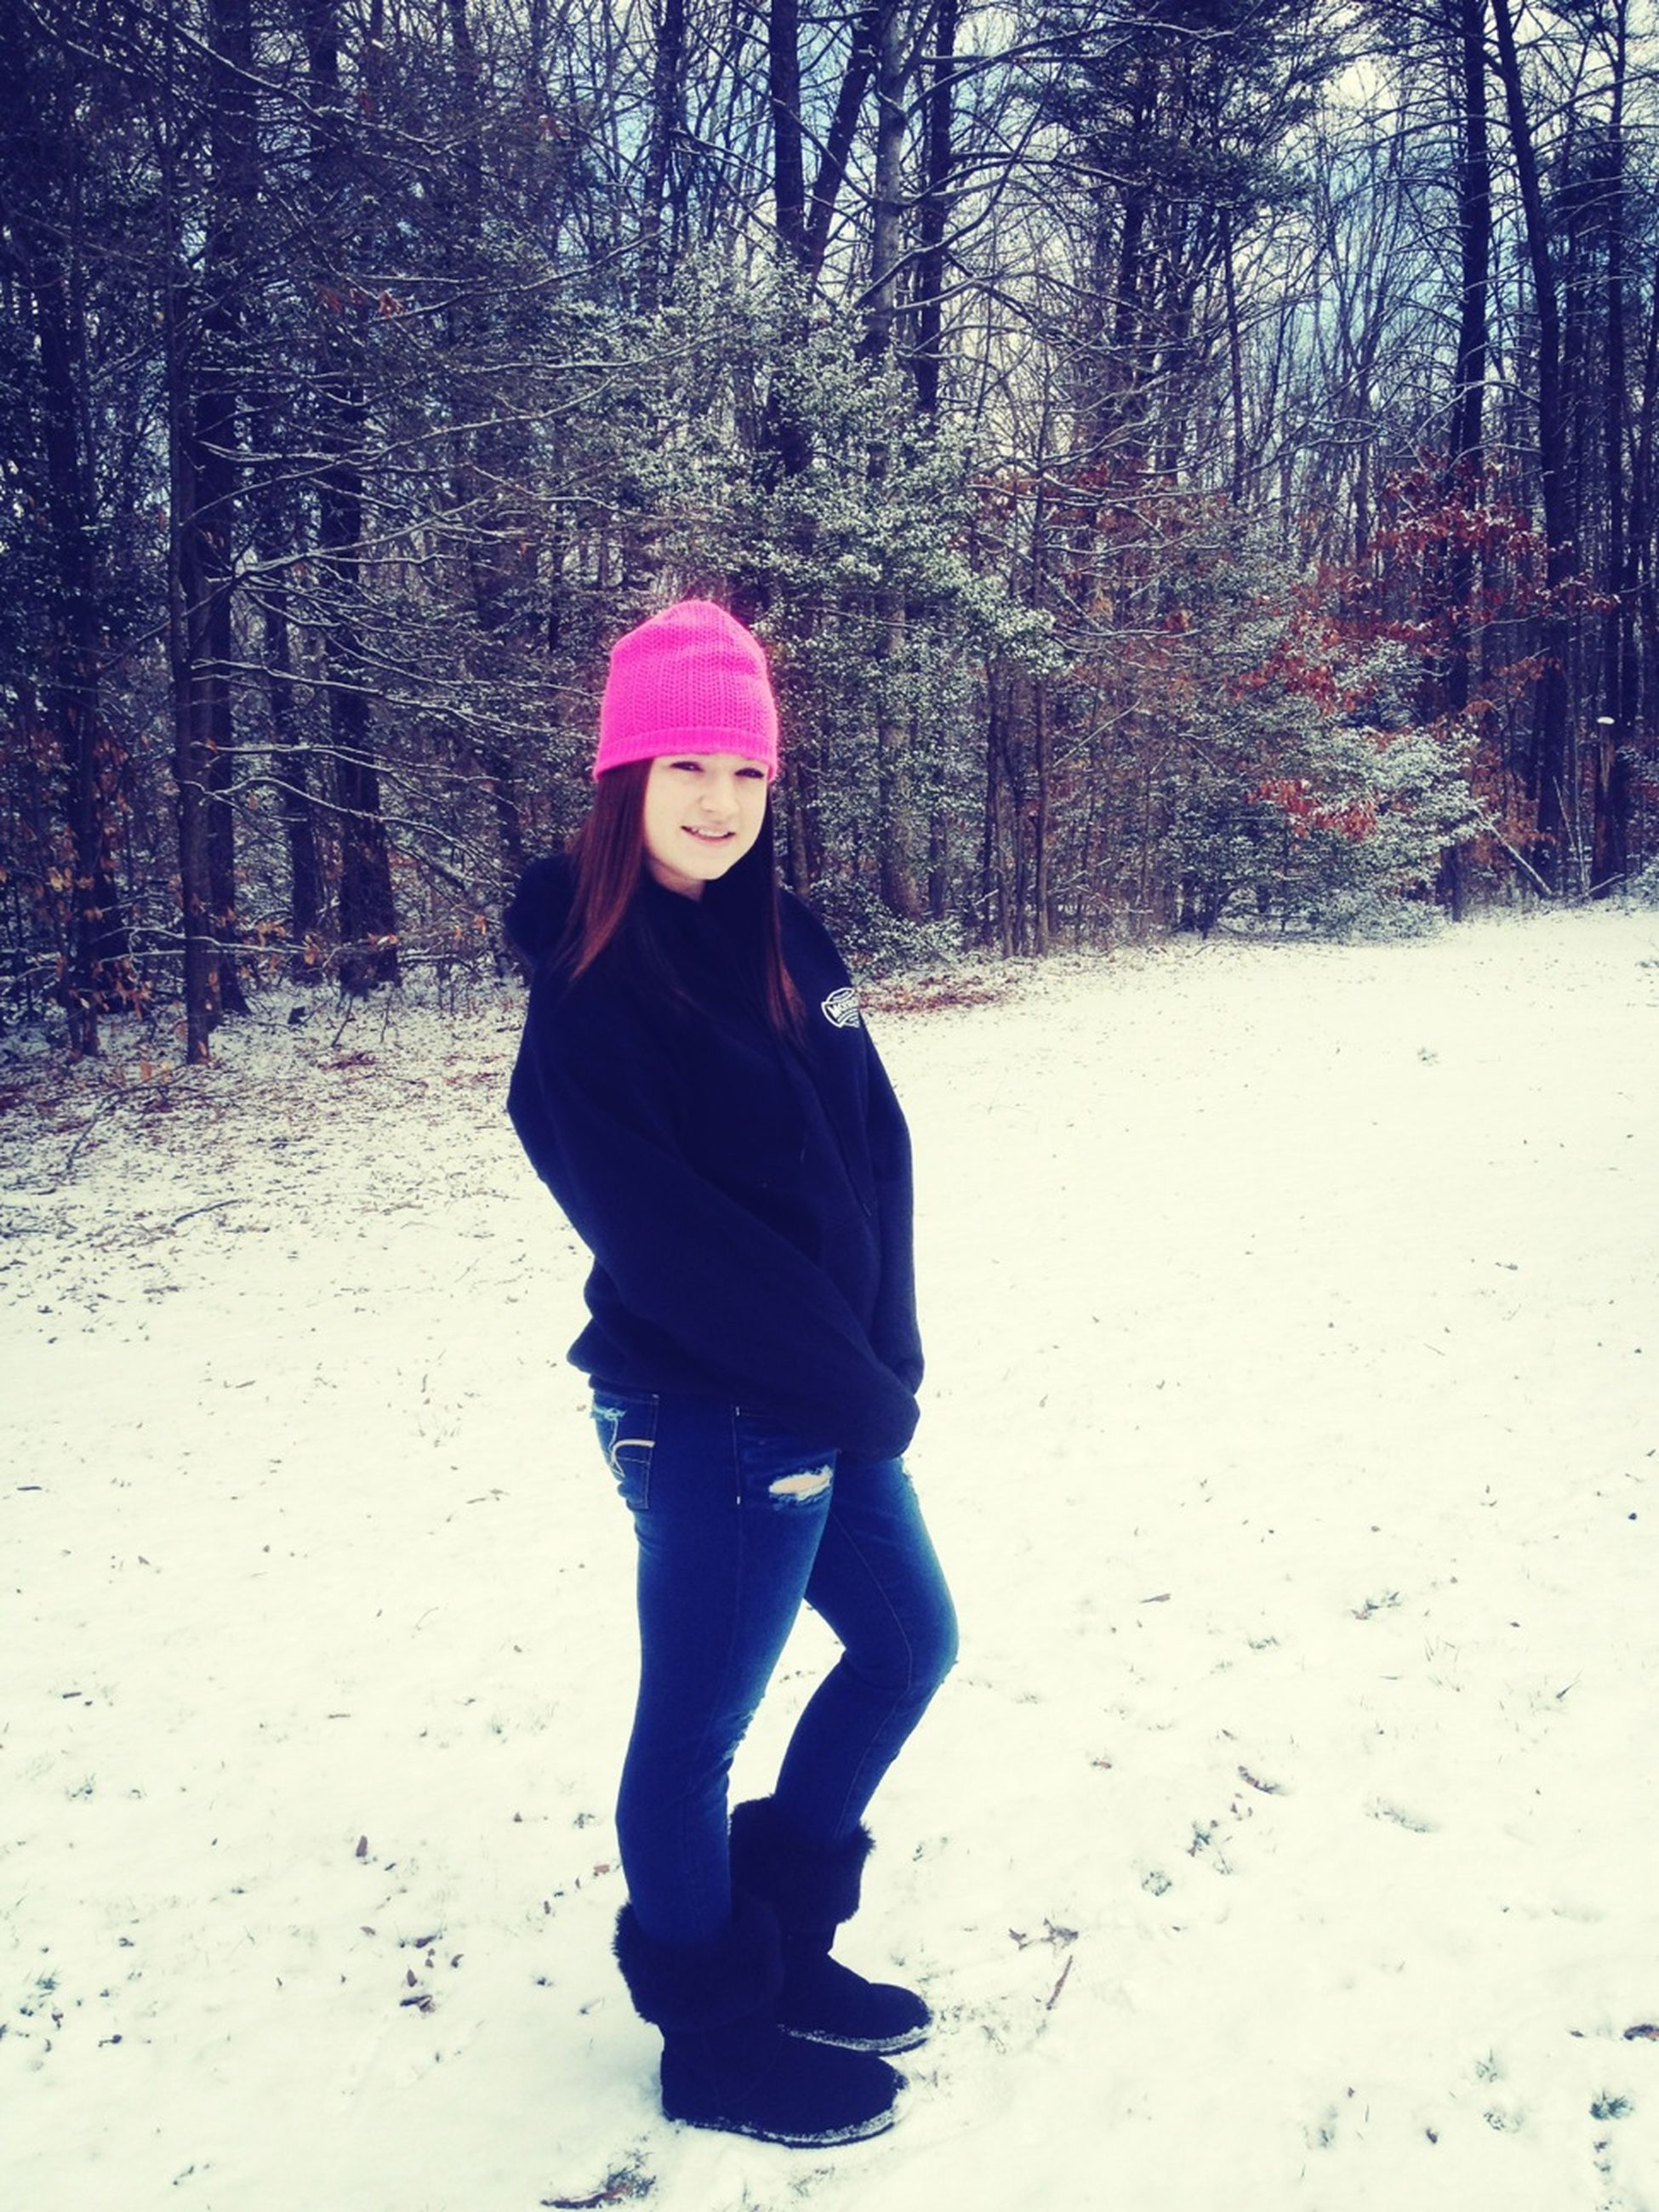 full length, lifestyles, leisure activity, warm clothing, casual clothing, tree, winter, rear view, season, person, walking, standing, cold temperature, snow, forest, childhood, front view, jacket